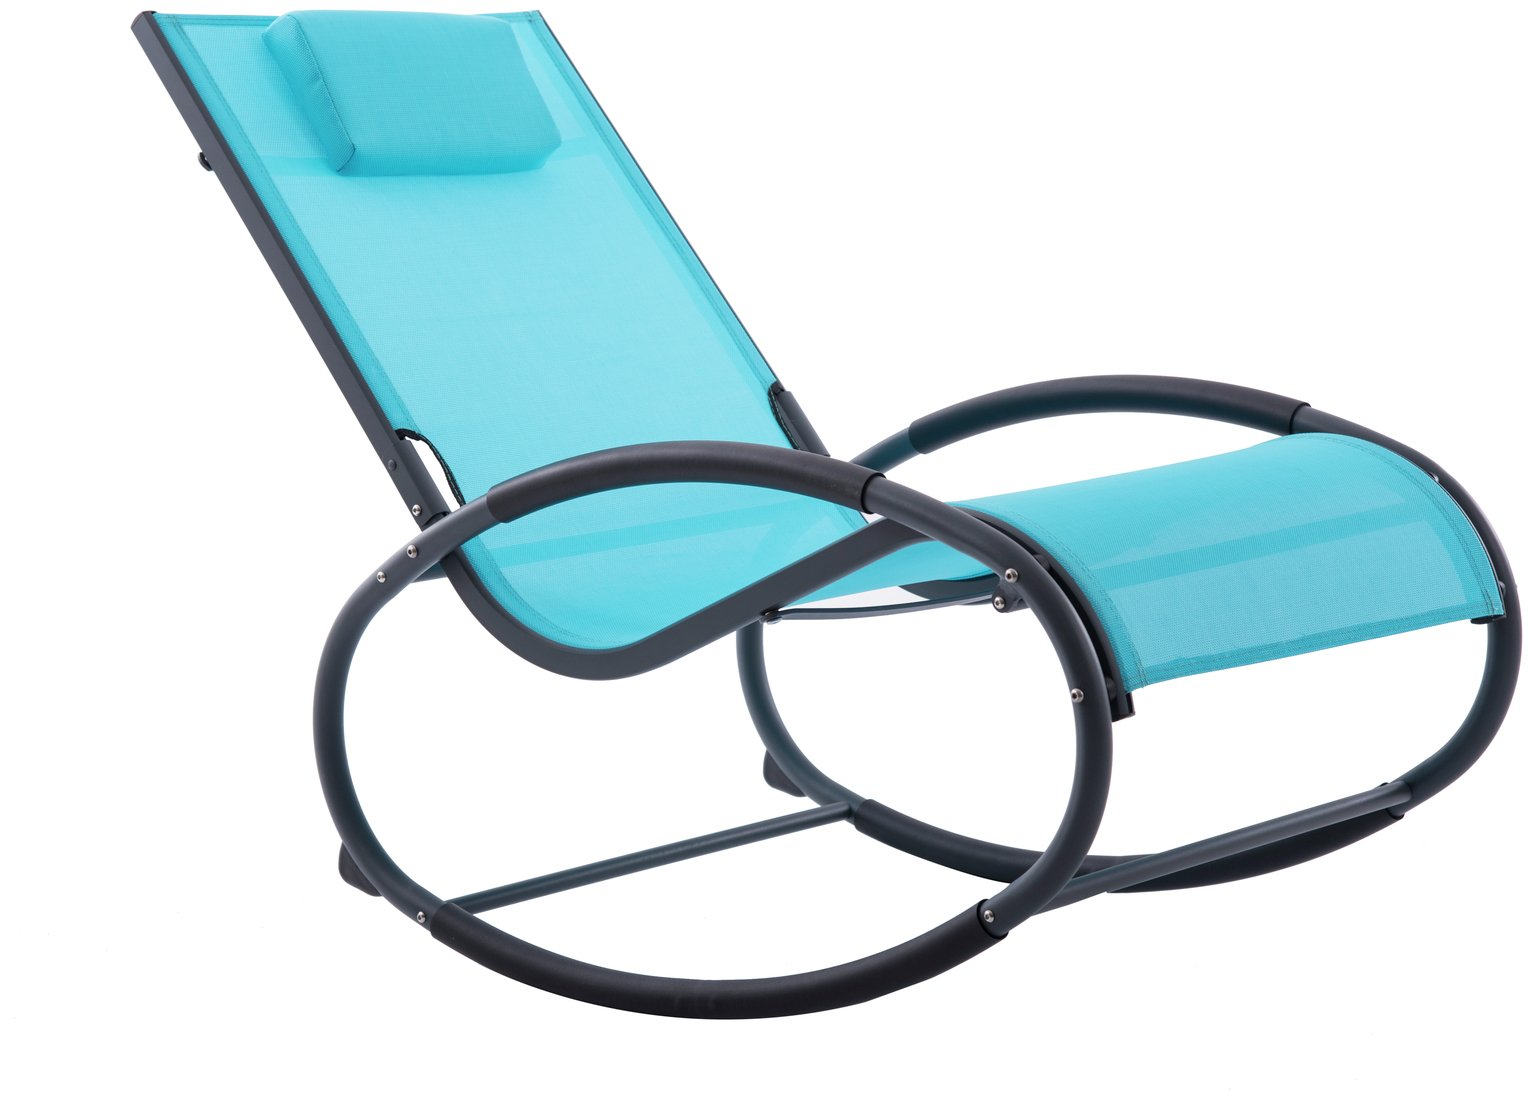 Vivere Wave Metal Rocker Chair - Ocean Blue on Matte Grey Best Price, Cheapest Prices